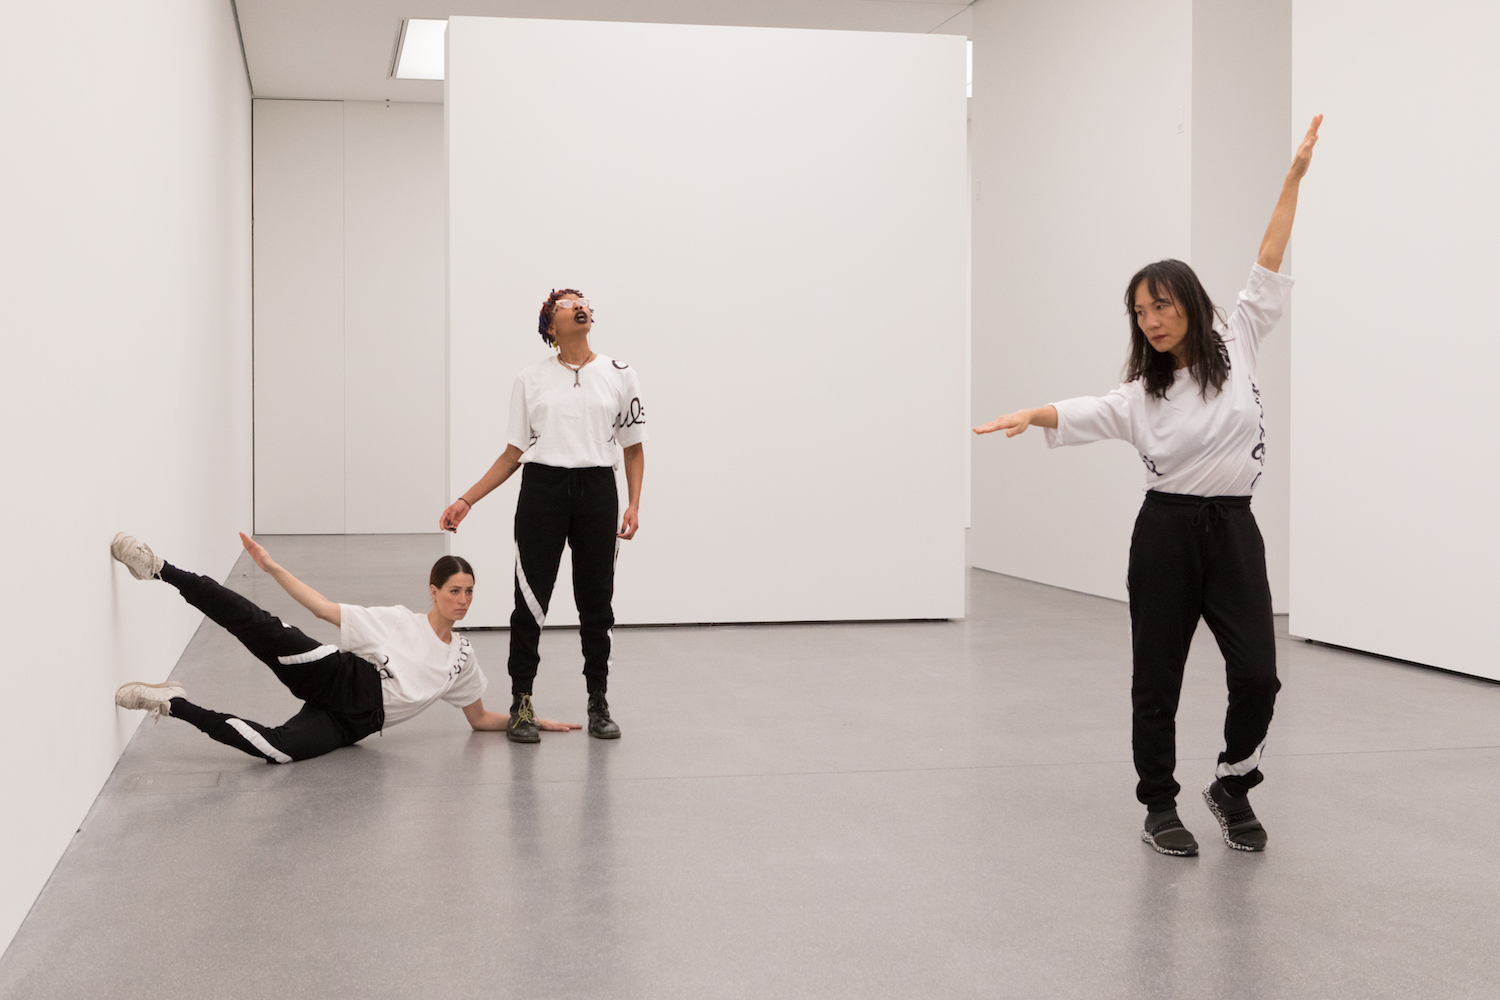 Nicole Bachmann, or what is, 2019. Performance. Performed by Patricia Langa, Jia-Yu Corti, Legion Seven. Bündner Kunstmuseum, Chur, CH.